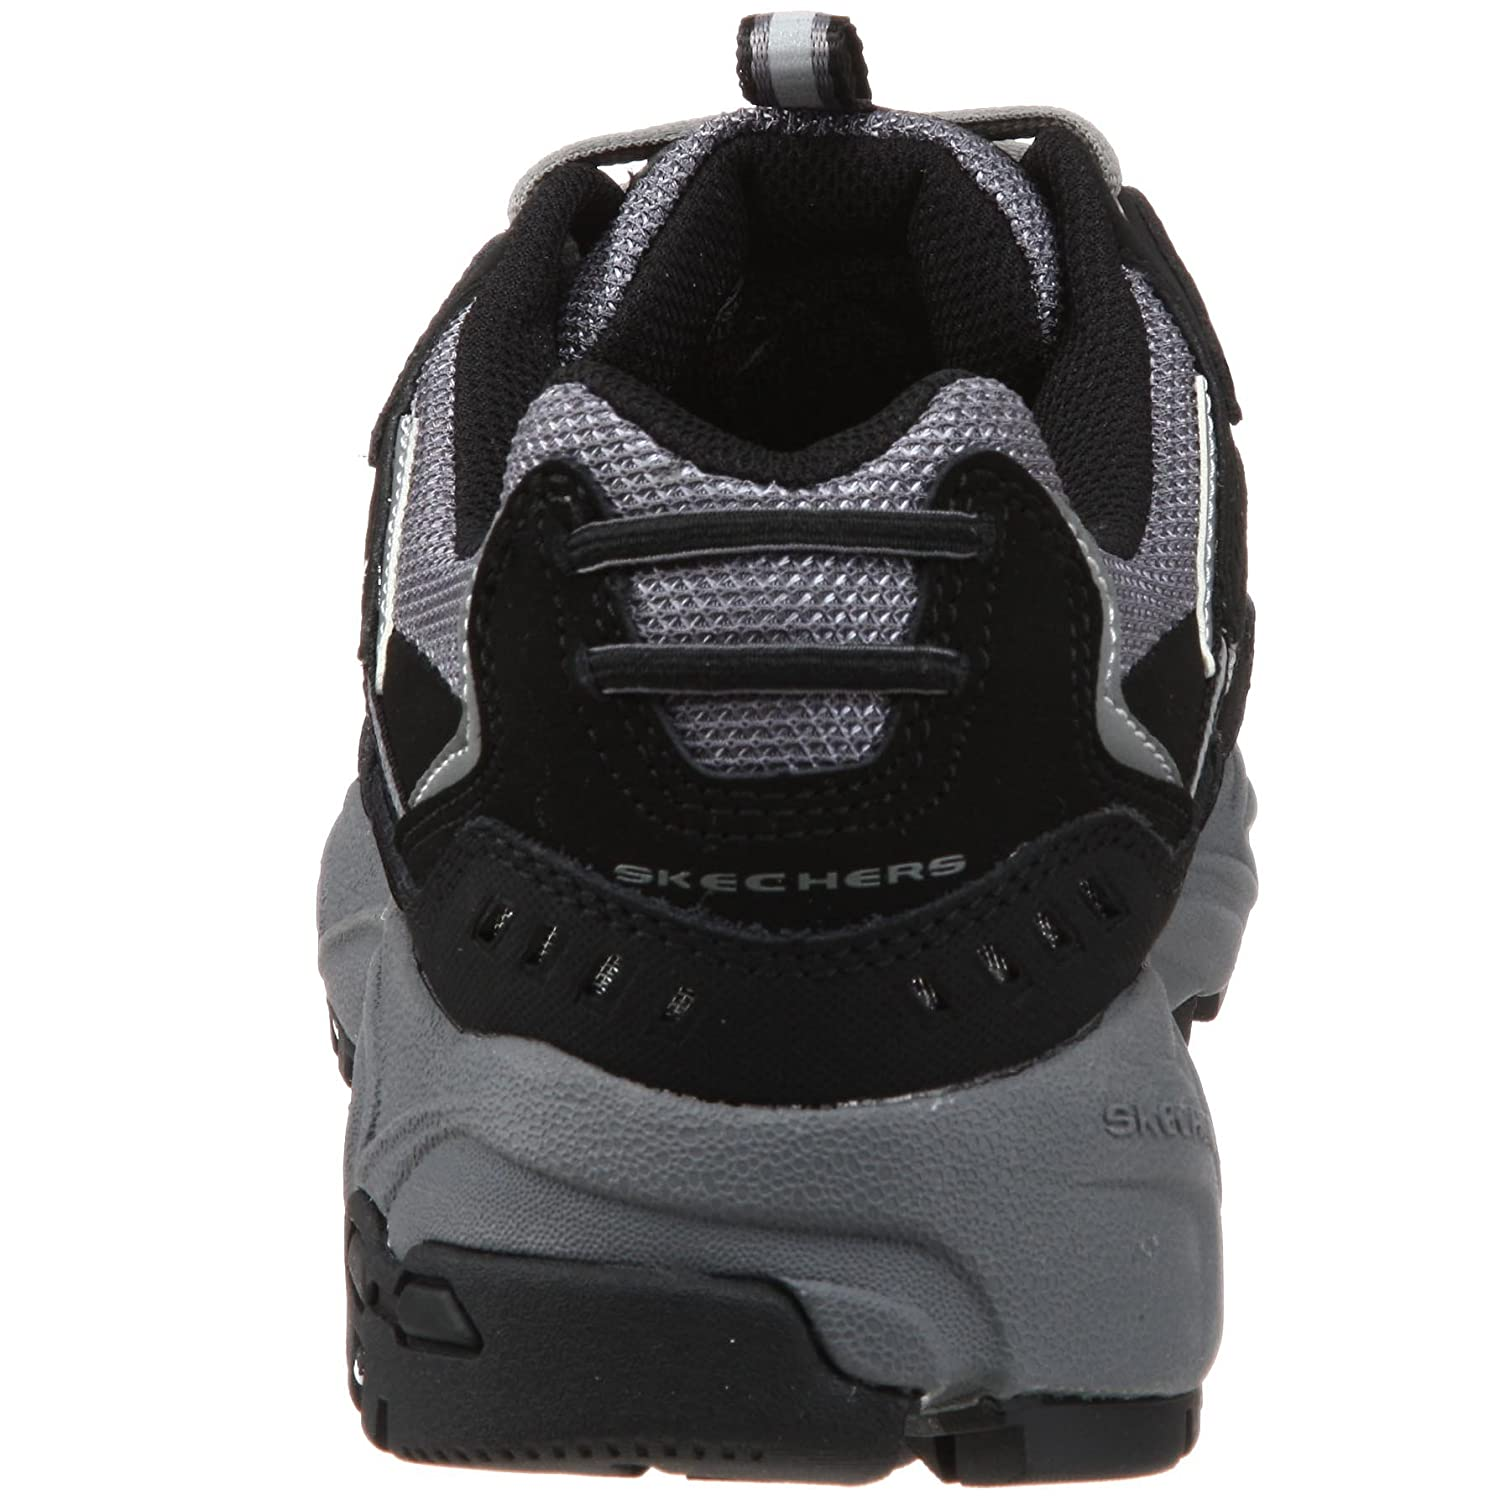 Skechers Sport Mens Stamina Nuovo Cutback Lace-Up Sneaker